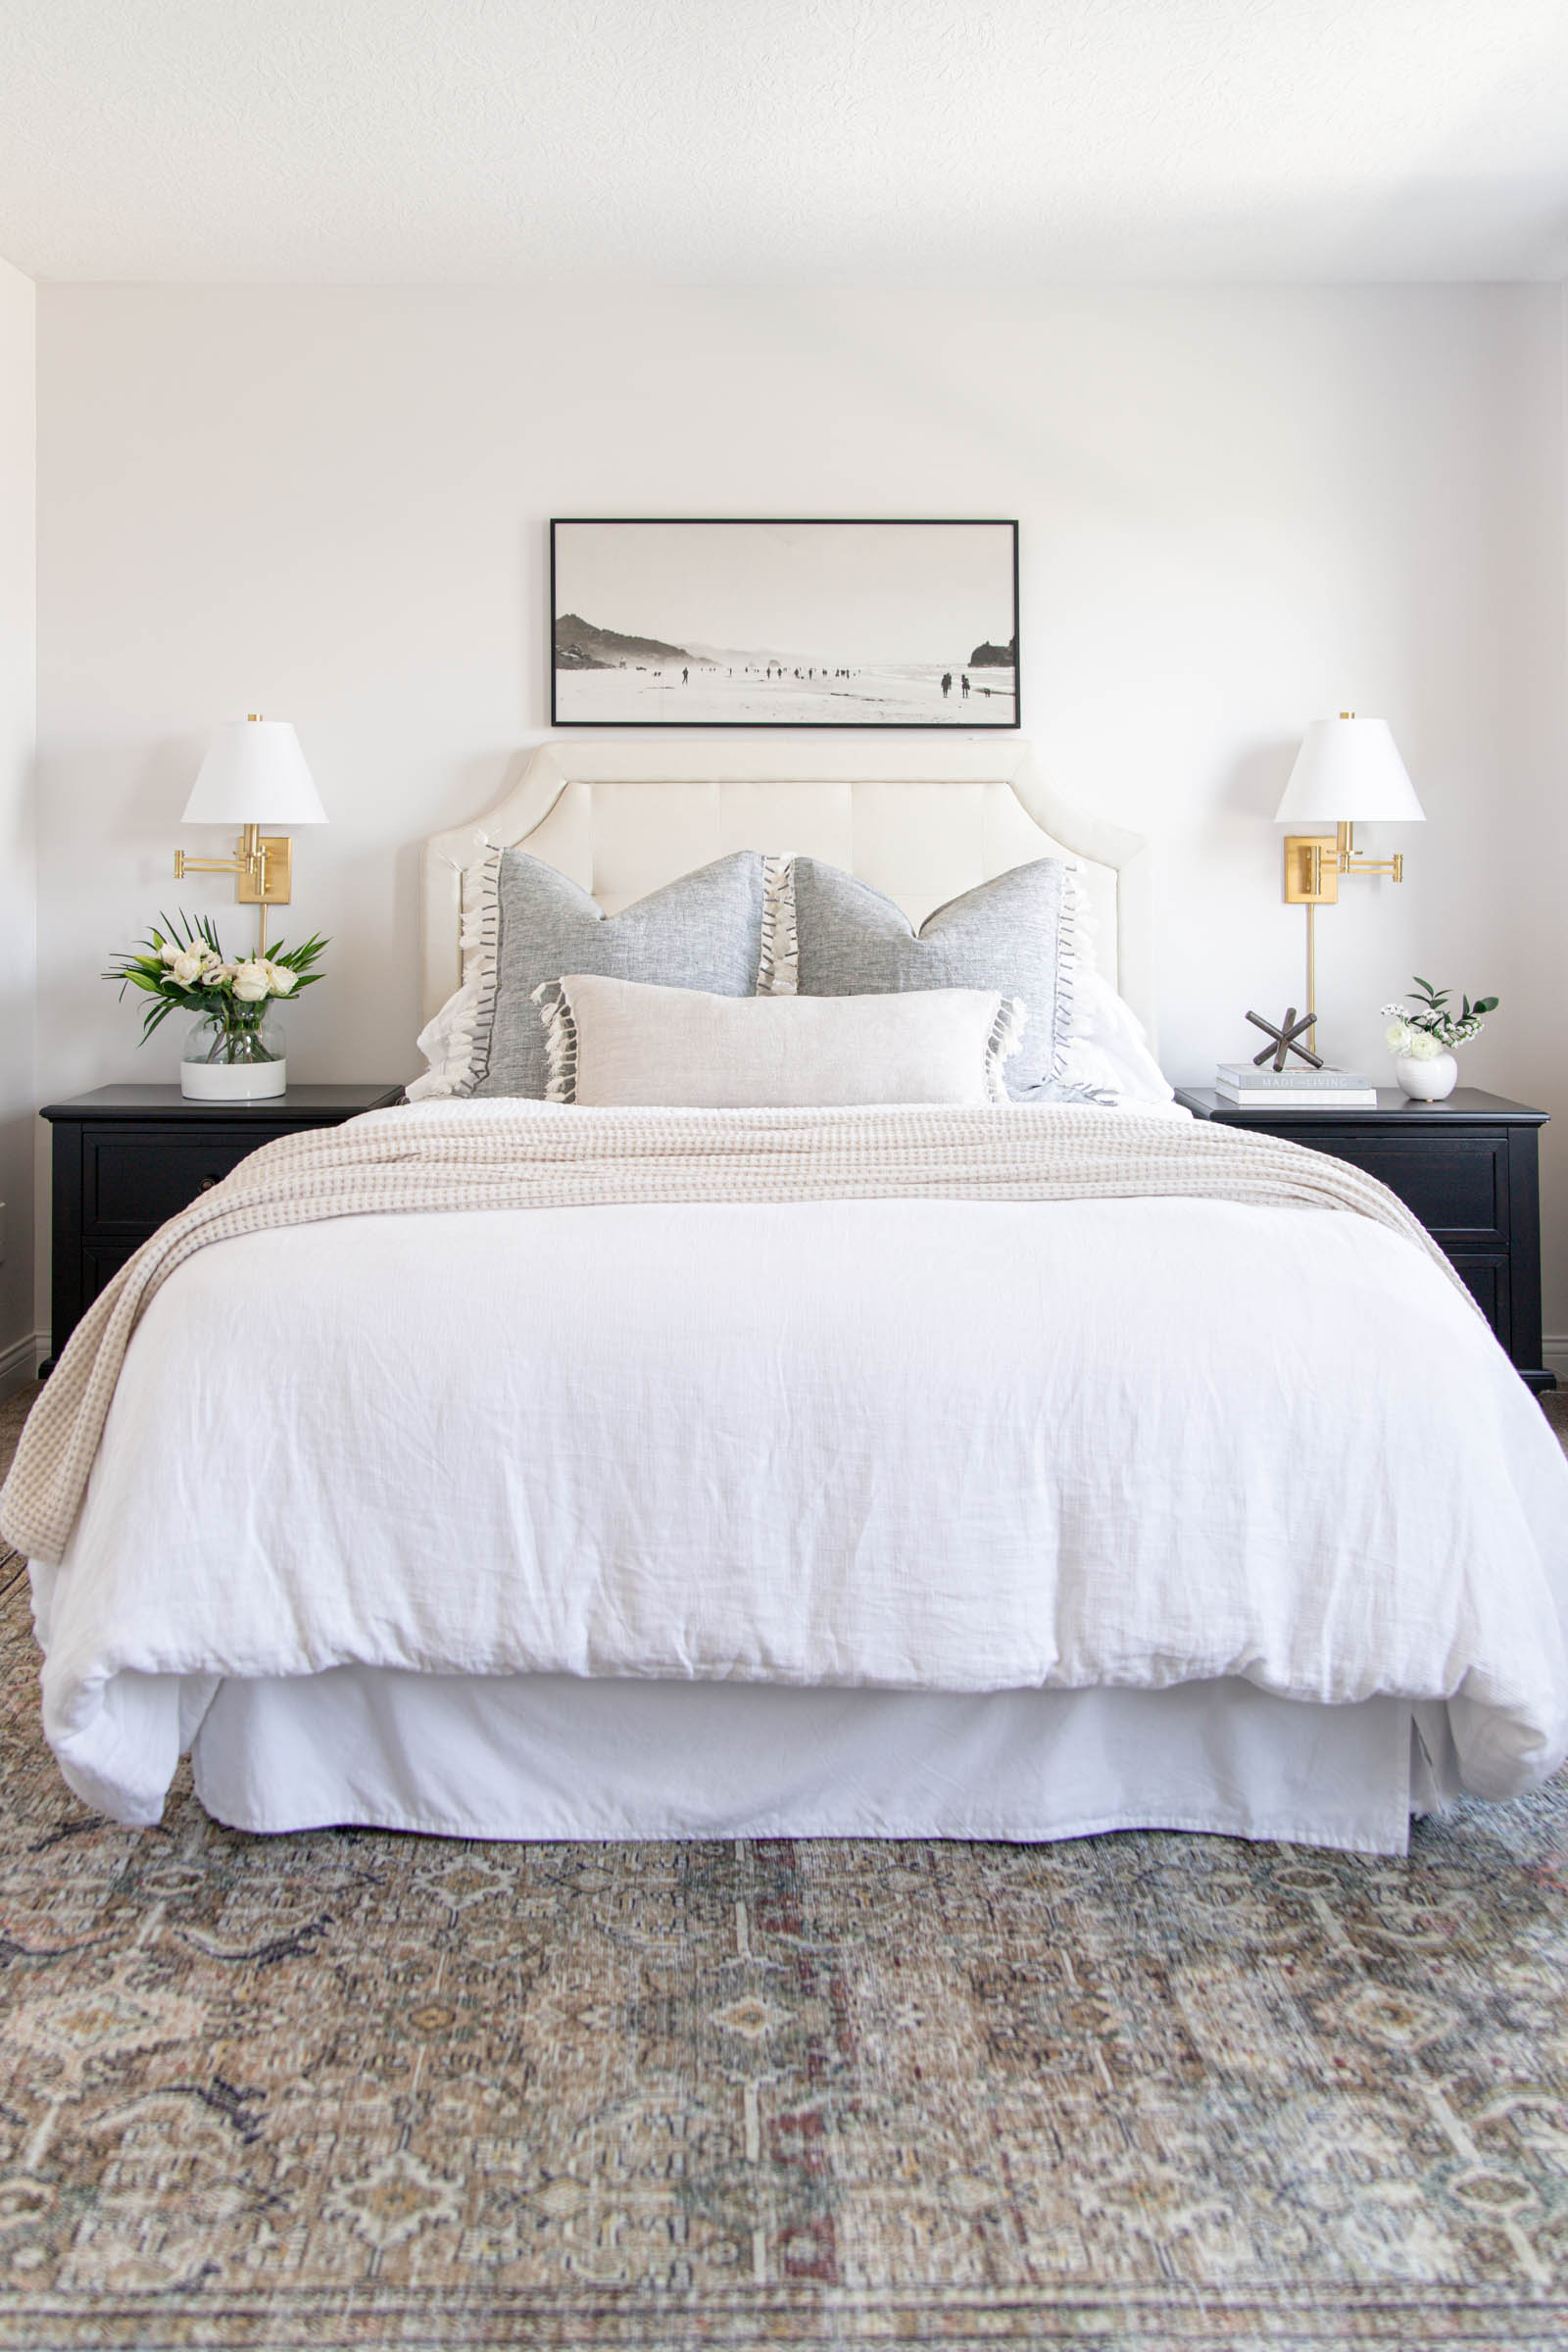 Coastal Pillow Favorites with Serena and Lily | linen pillow cover, topanga pillow, coastal artwork, loloi Layla olive charcoal rug